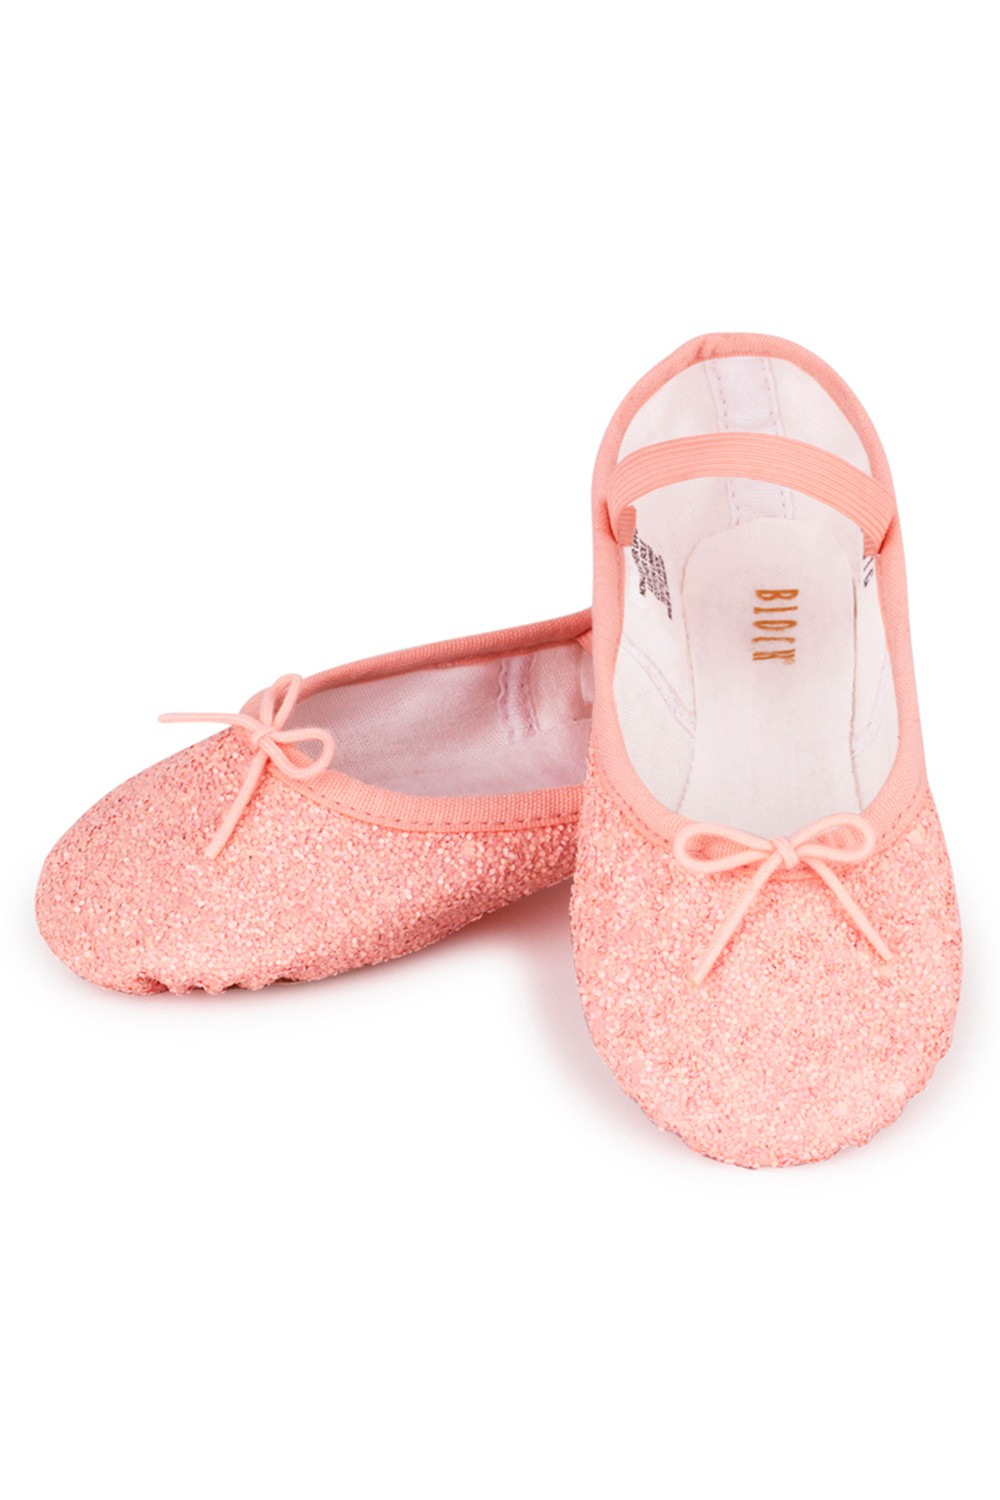 Sparkle - Fille Girl's Ballet Shoes